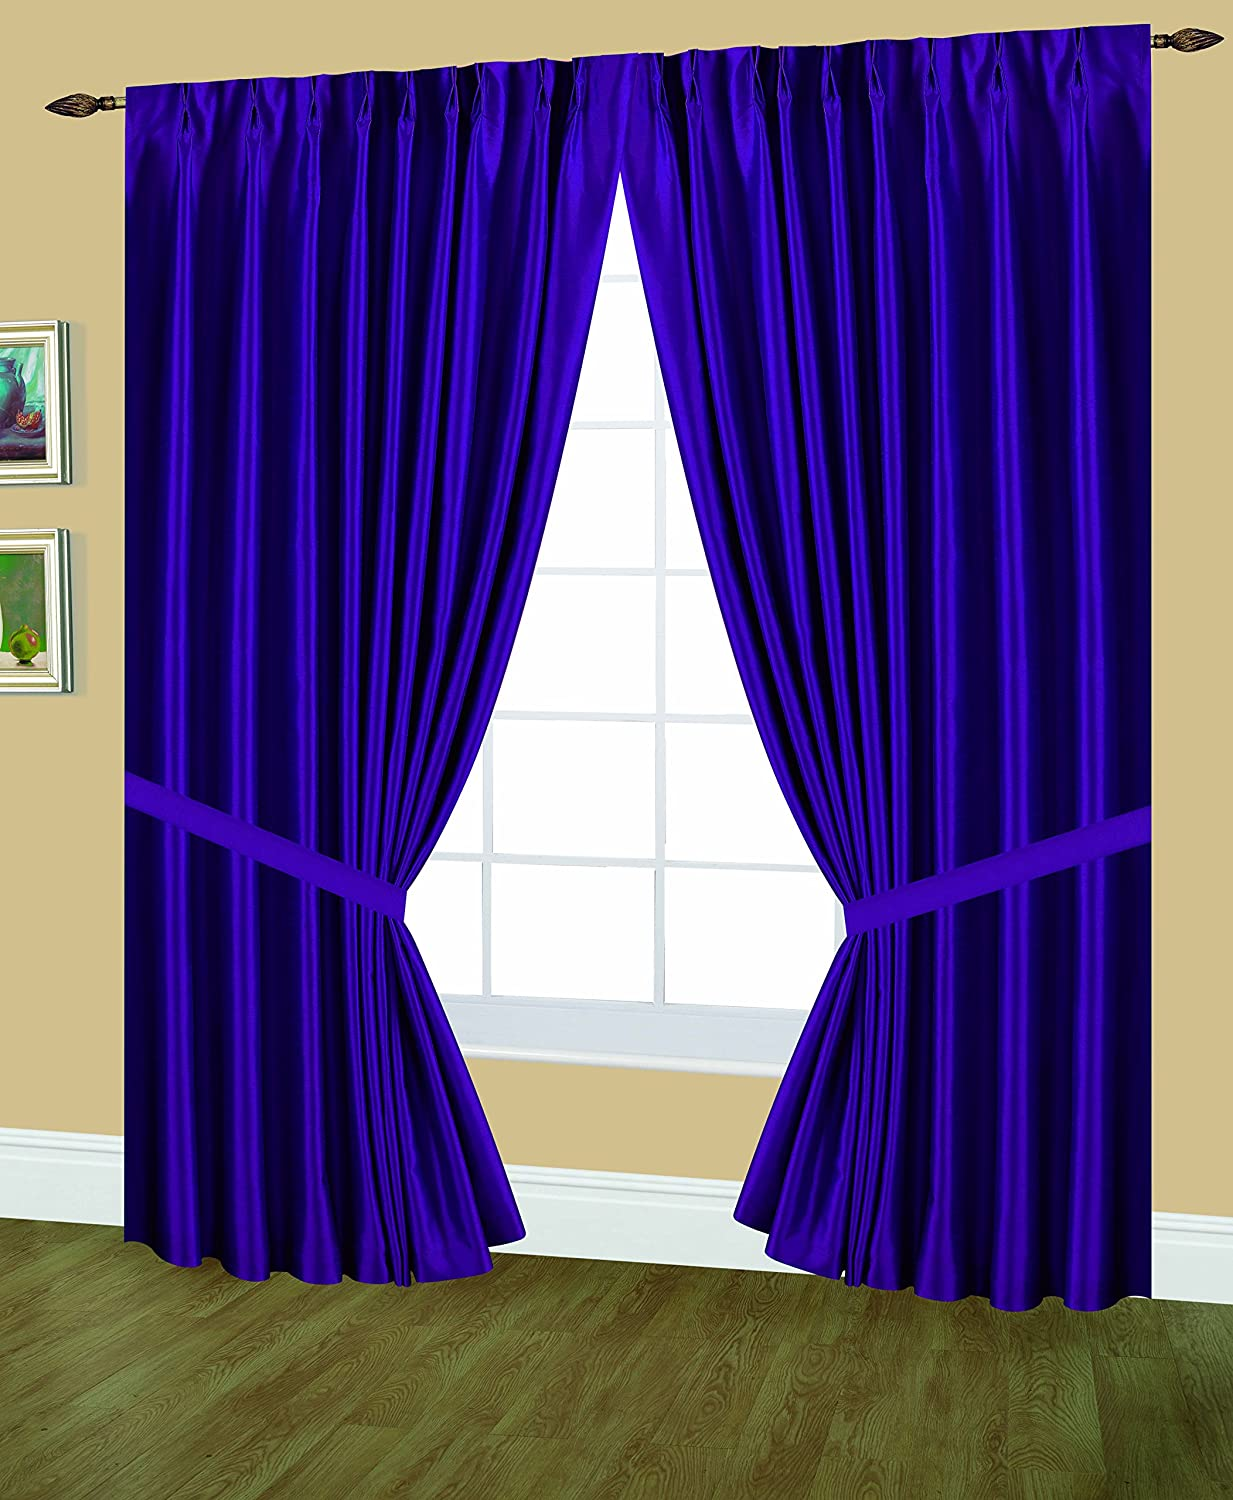 Editex Home Textiles Elaine Lined Pinch Pleated Window Curtain, 96 by 63-Inch, Purple